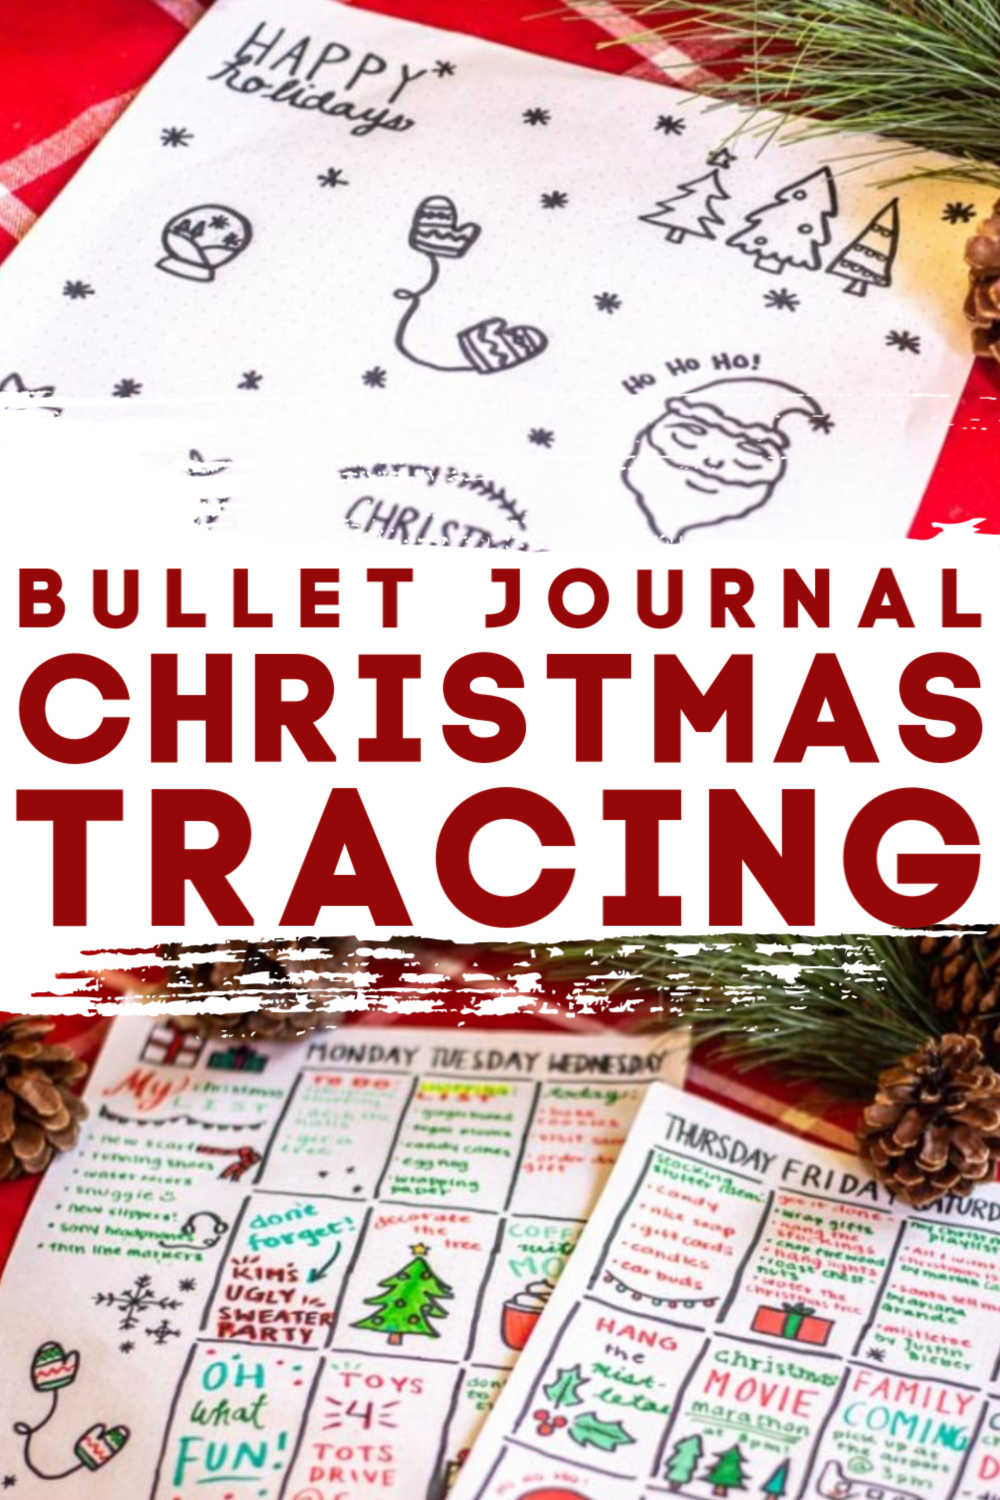 Bullet Journal Christmas Ideas and Tracing Doodles. Fun and relaxing way to stay organized this holiday season #bujo #bulletjournal #christmas